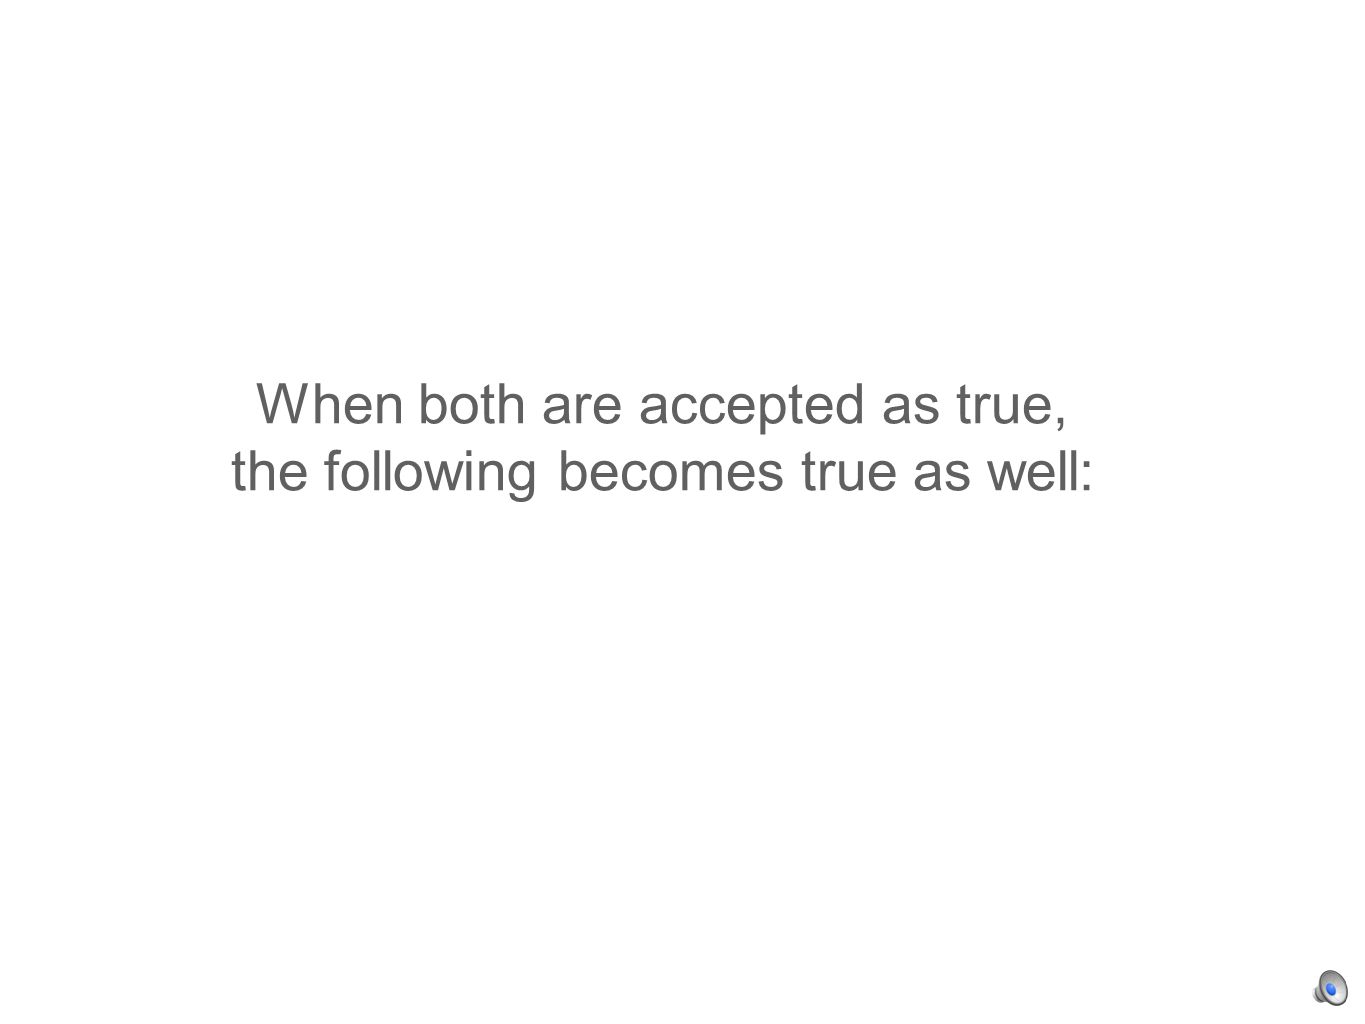 When both are accepted as true, the following becomes true as well: